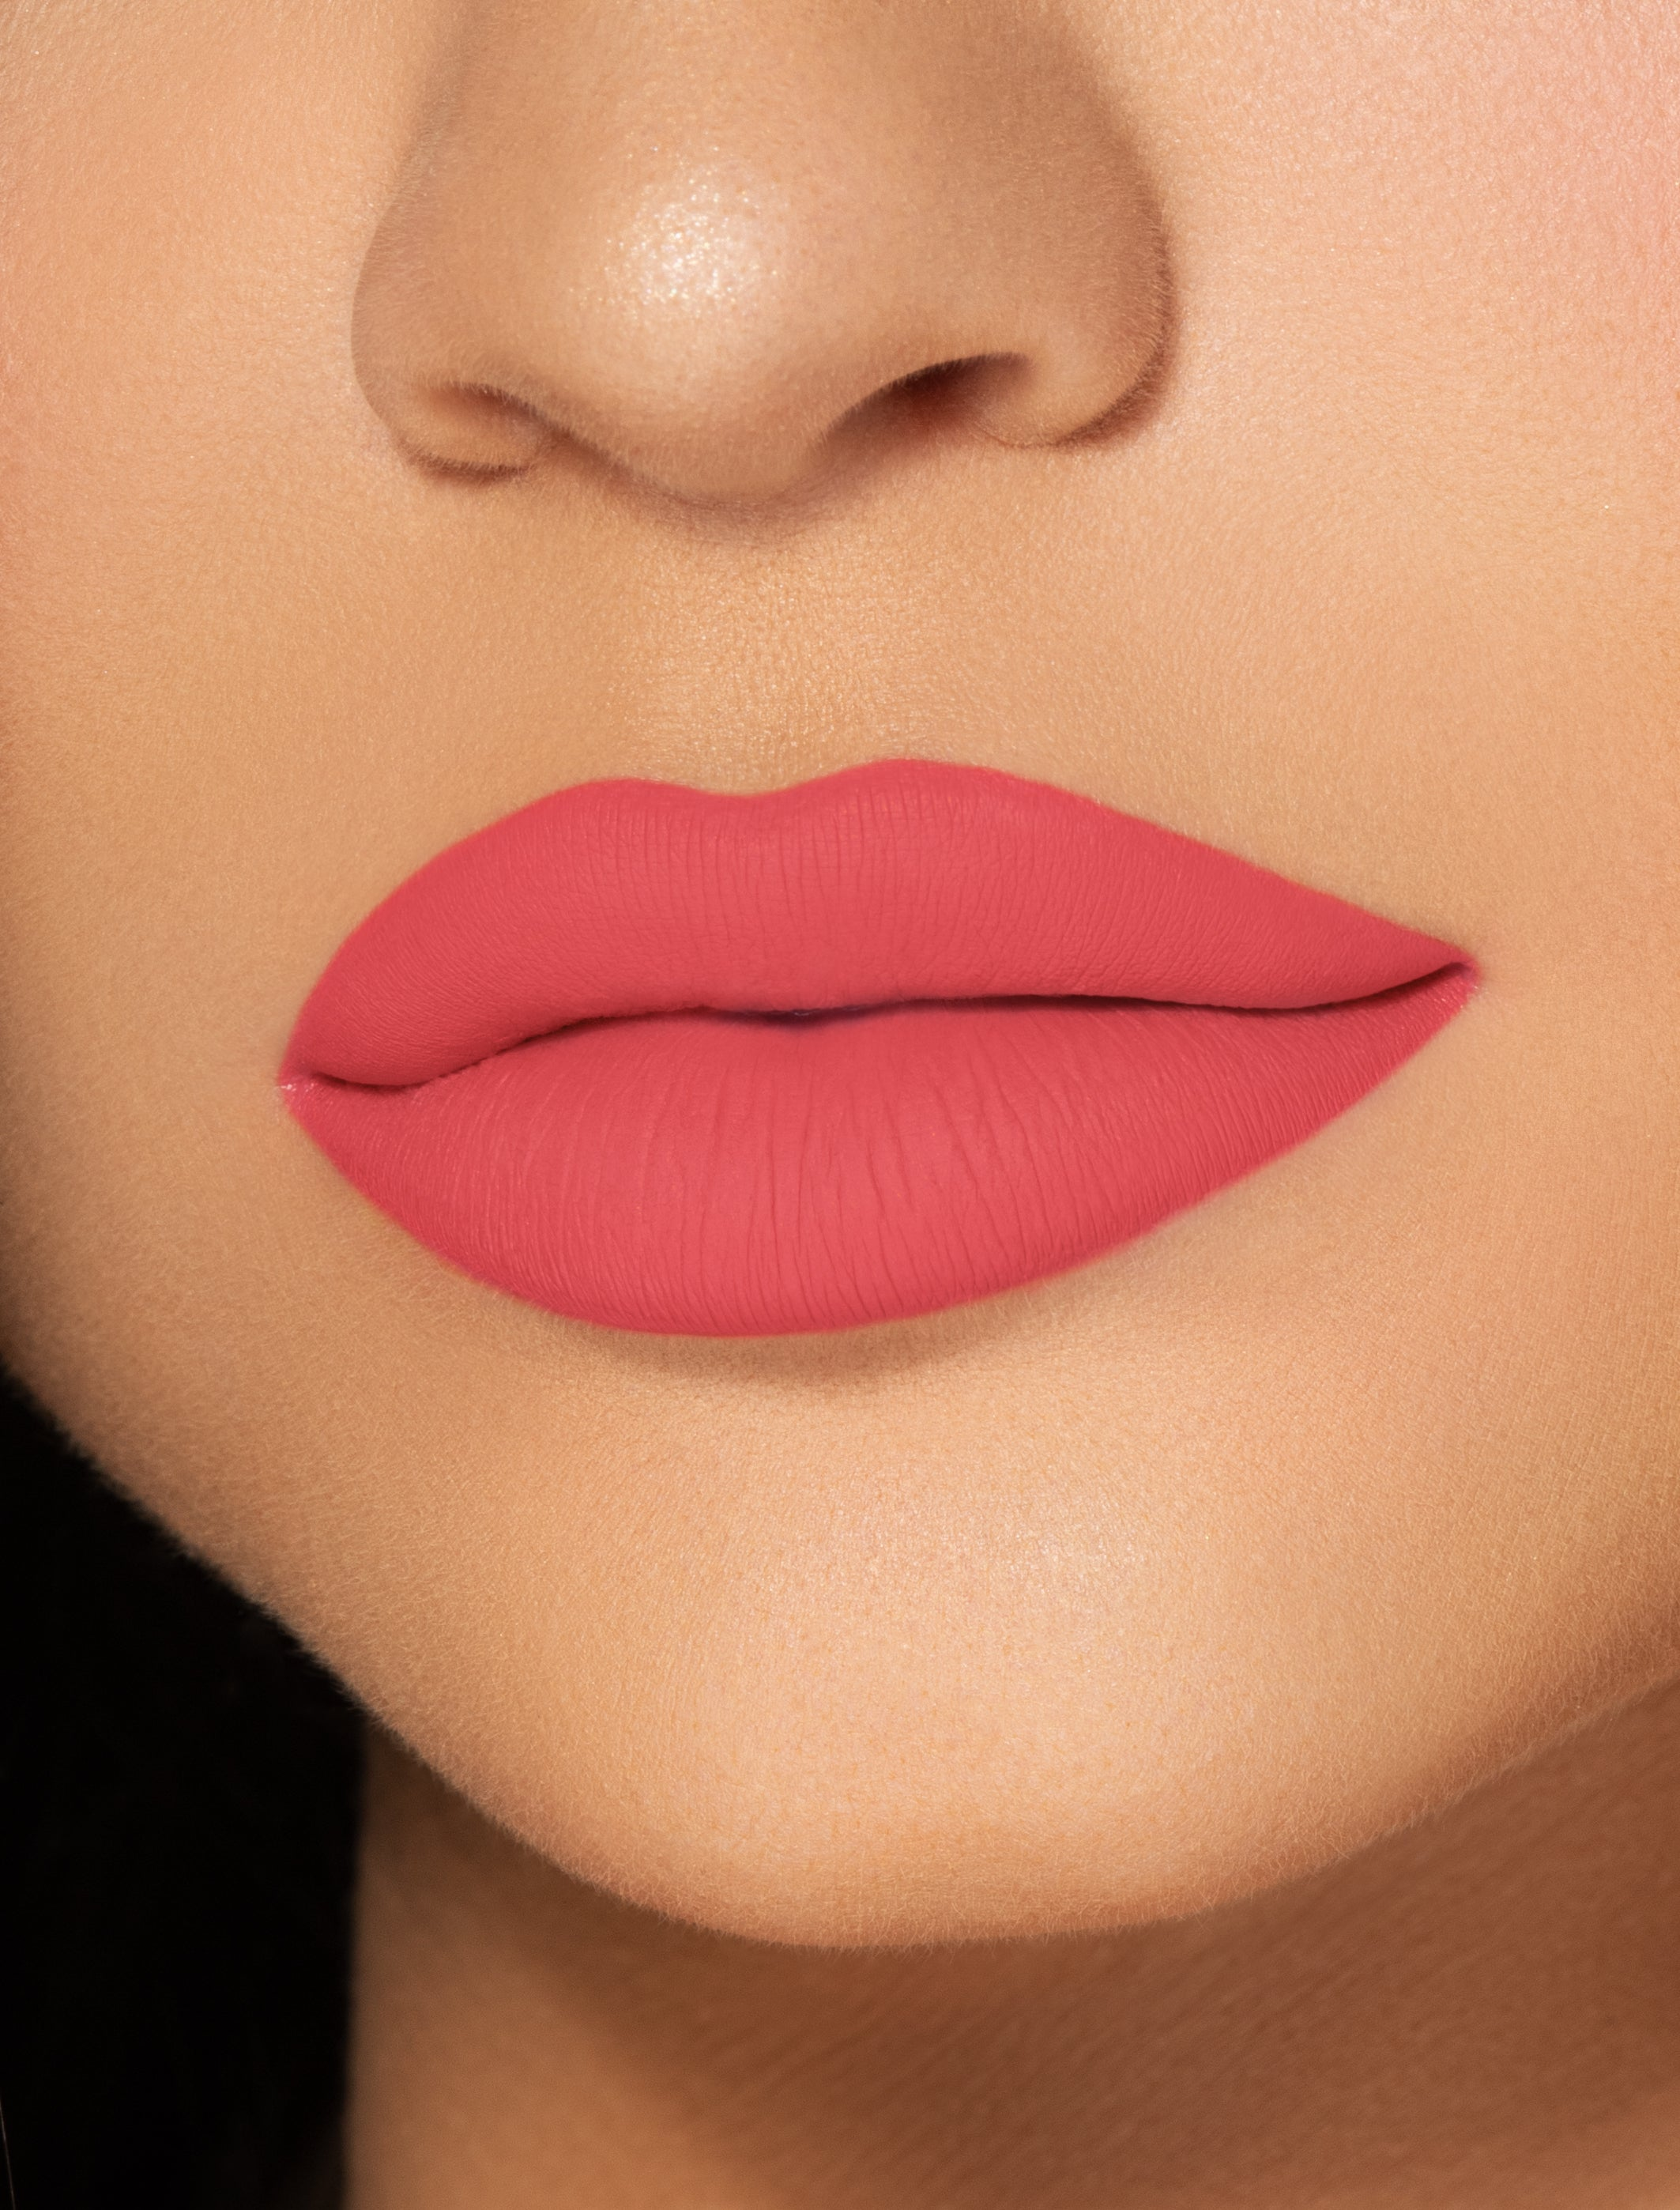 Baby Girl Matte Liquid Lipstick Kylie Cosmetics By Kylie Jenner